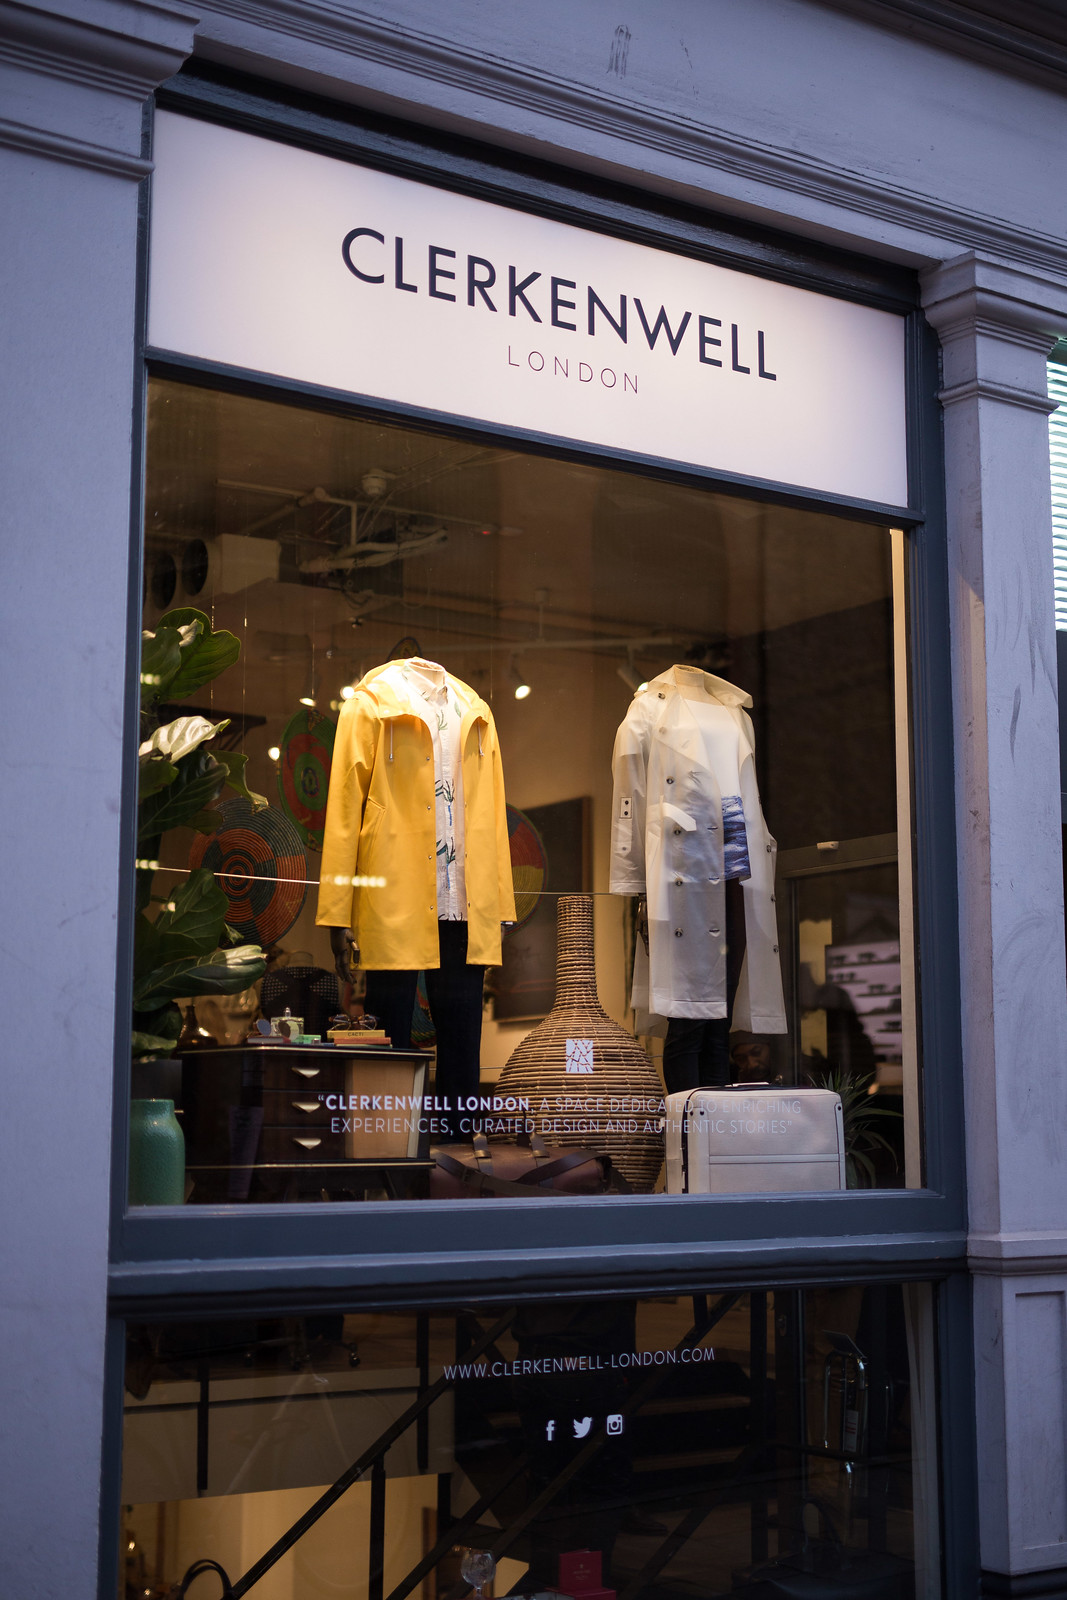 Tabl at Clerkenwell London